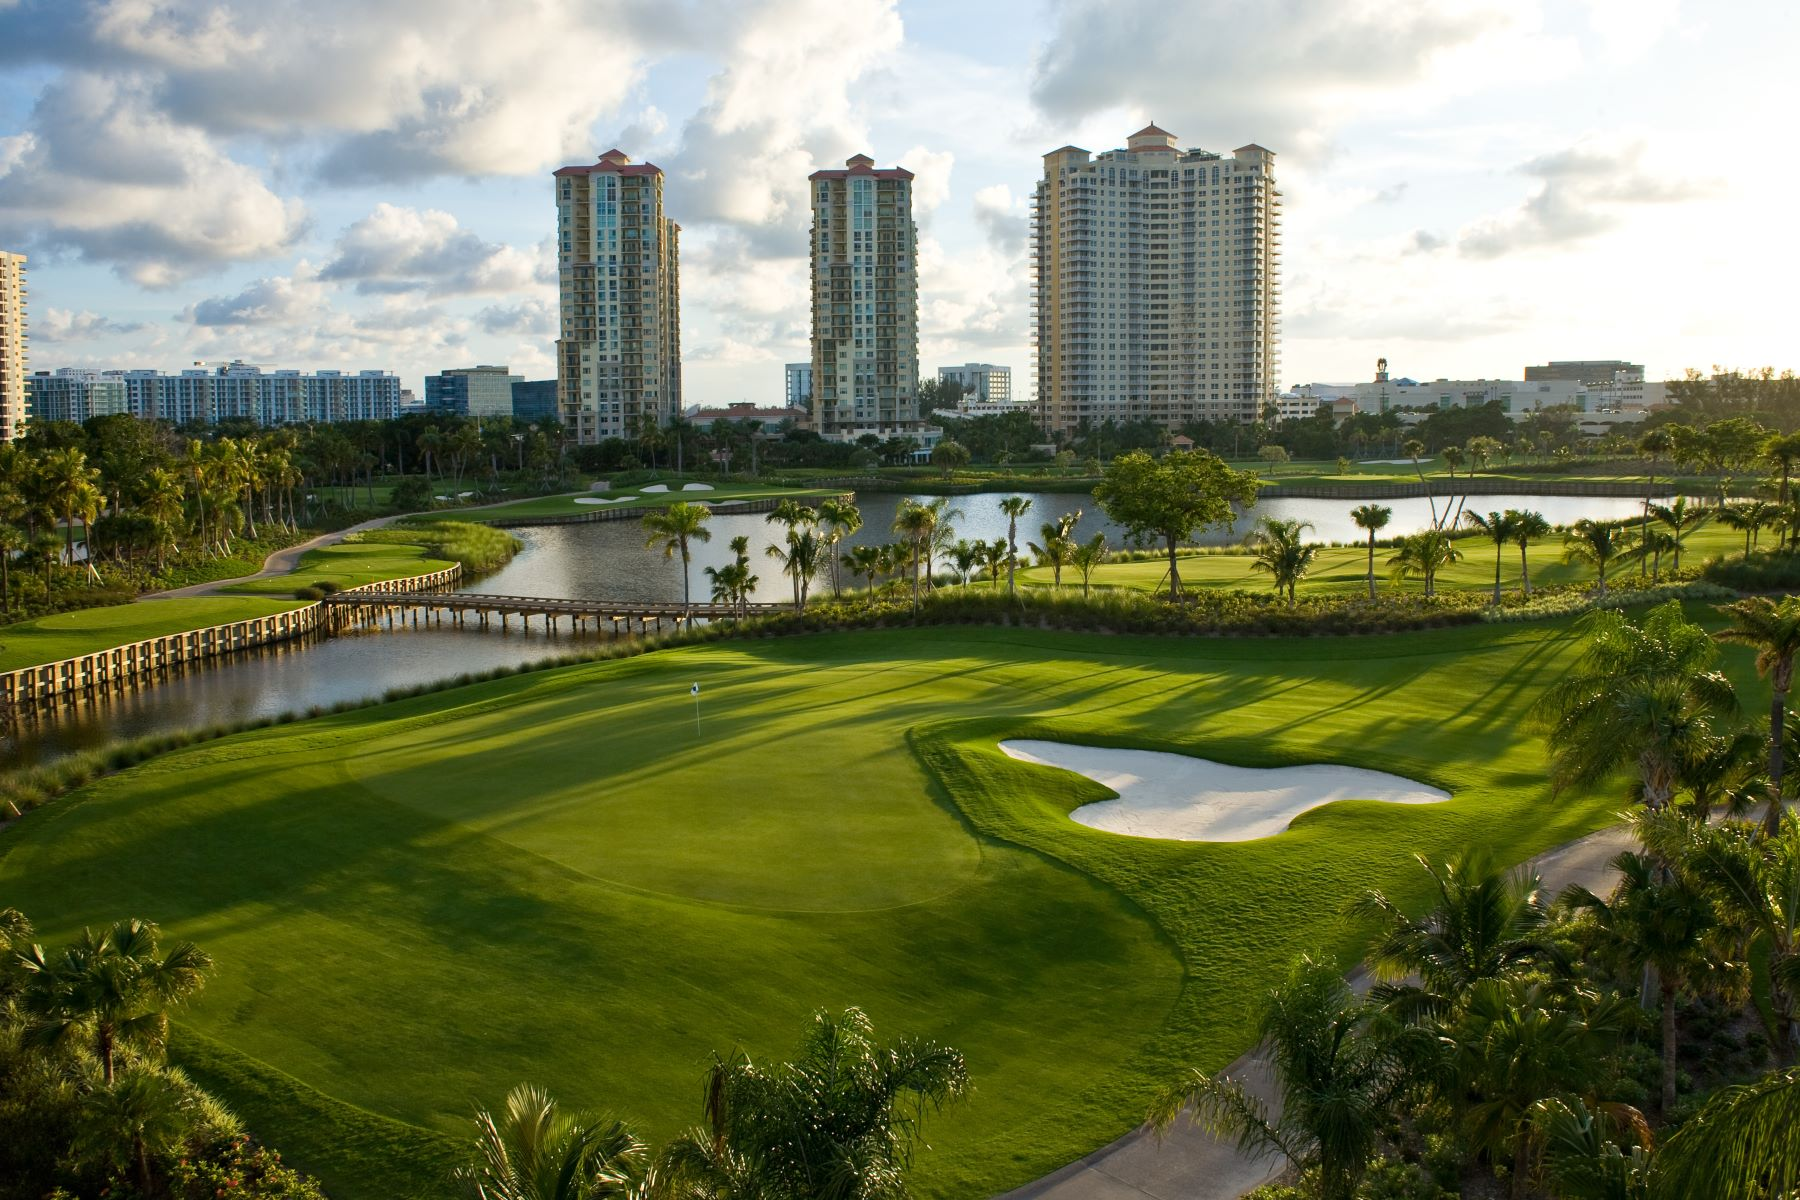 Condominium for Sale at 19501 W Country Club Dr #2503 19501 W Country Club Dr 2503, Aventura, Florida, 33180 United States